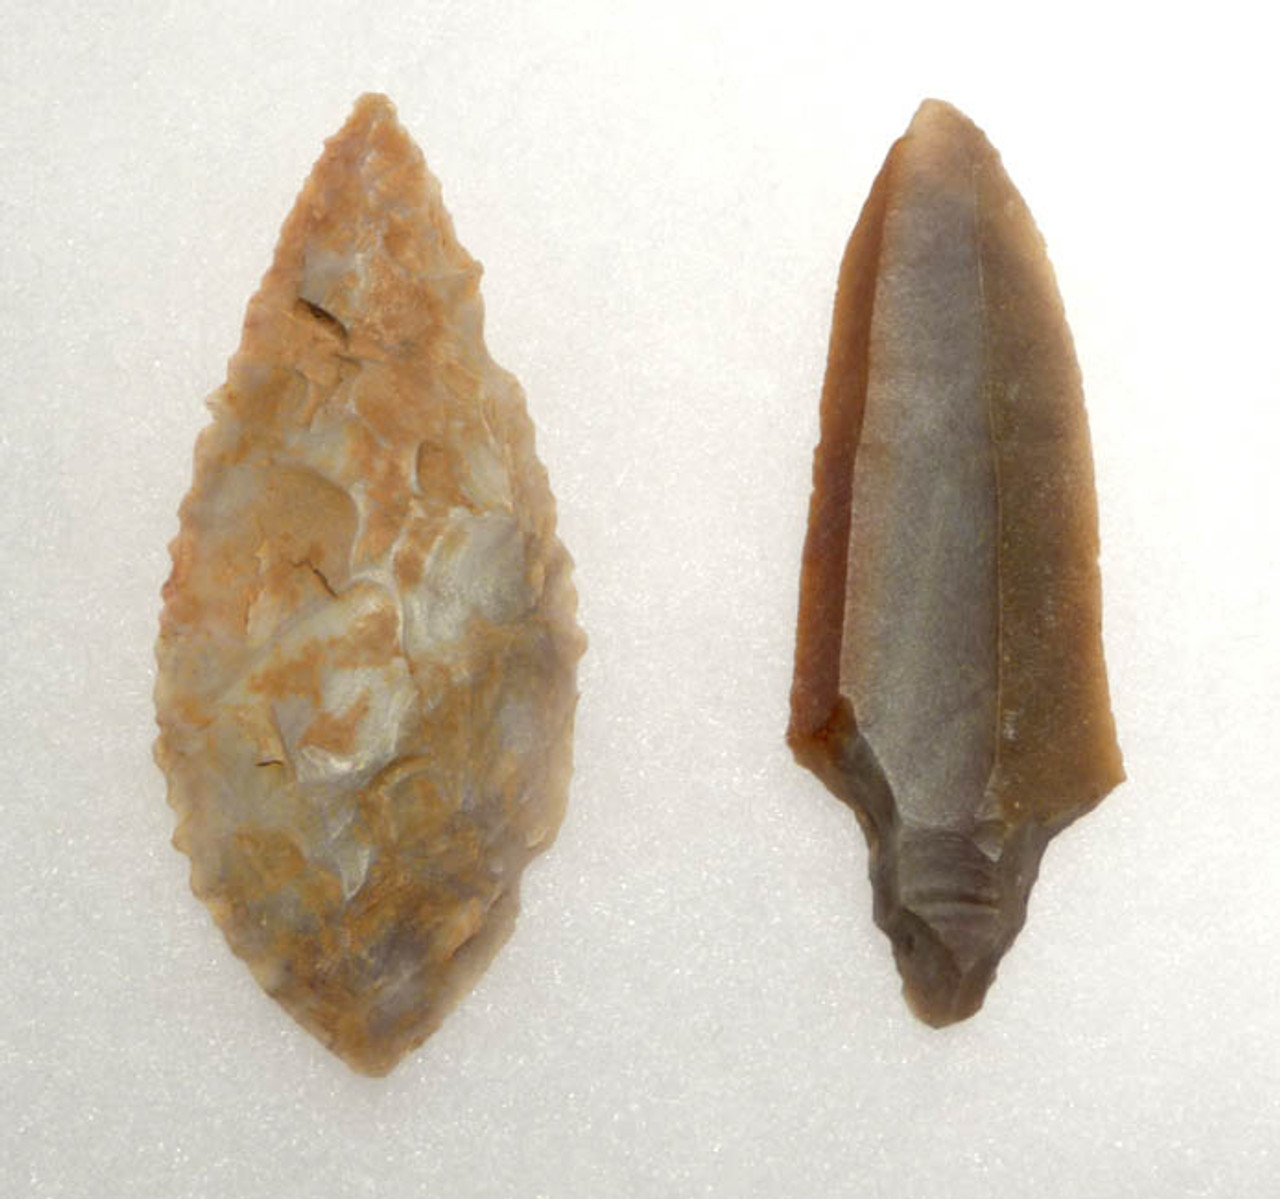 CAP128 - SUPERB REFERENCE SET OF 24 CHOICE GRADE CAPSIAN TRADITION AFRICAN NEOLITHIC PROJECTILE POINTS AND SCRAPERS